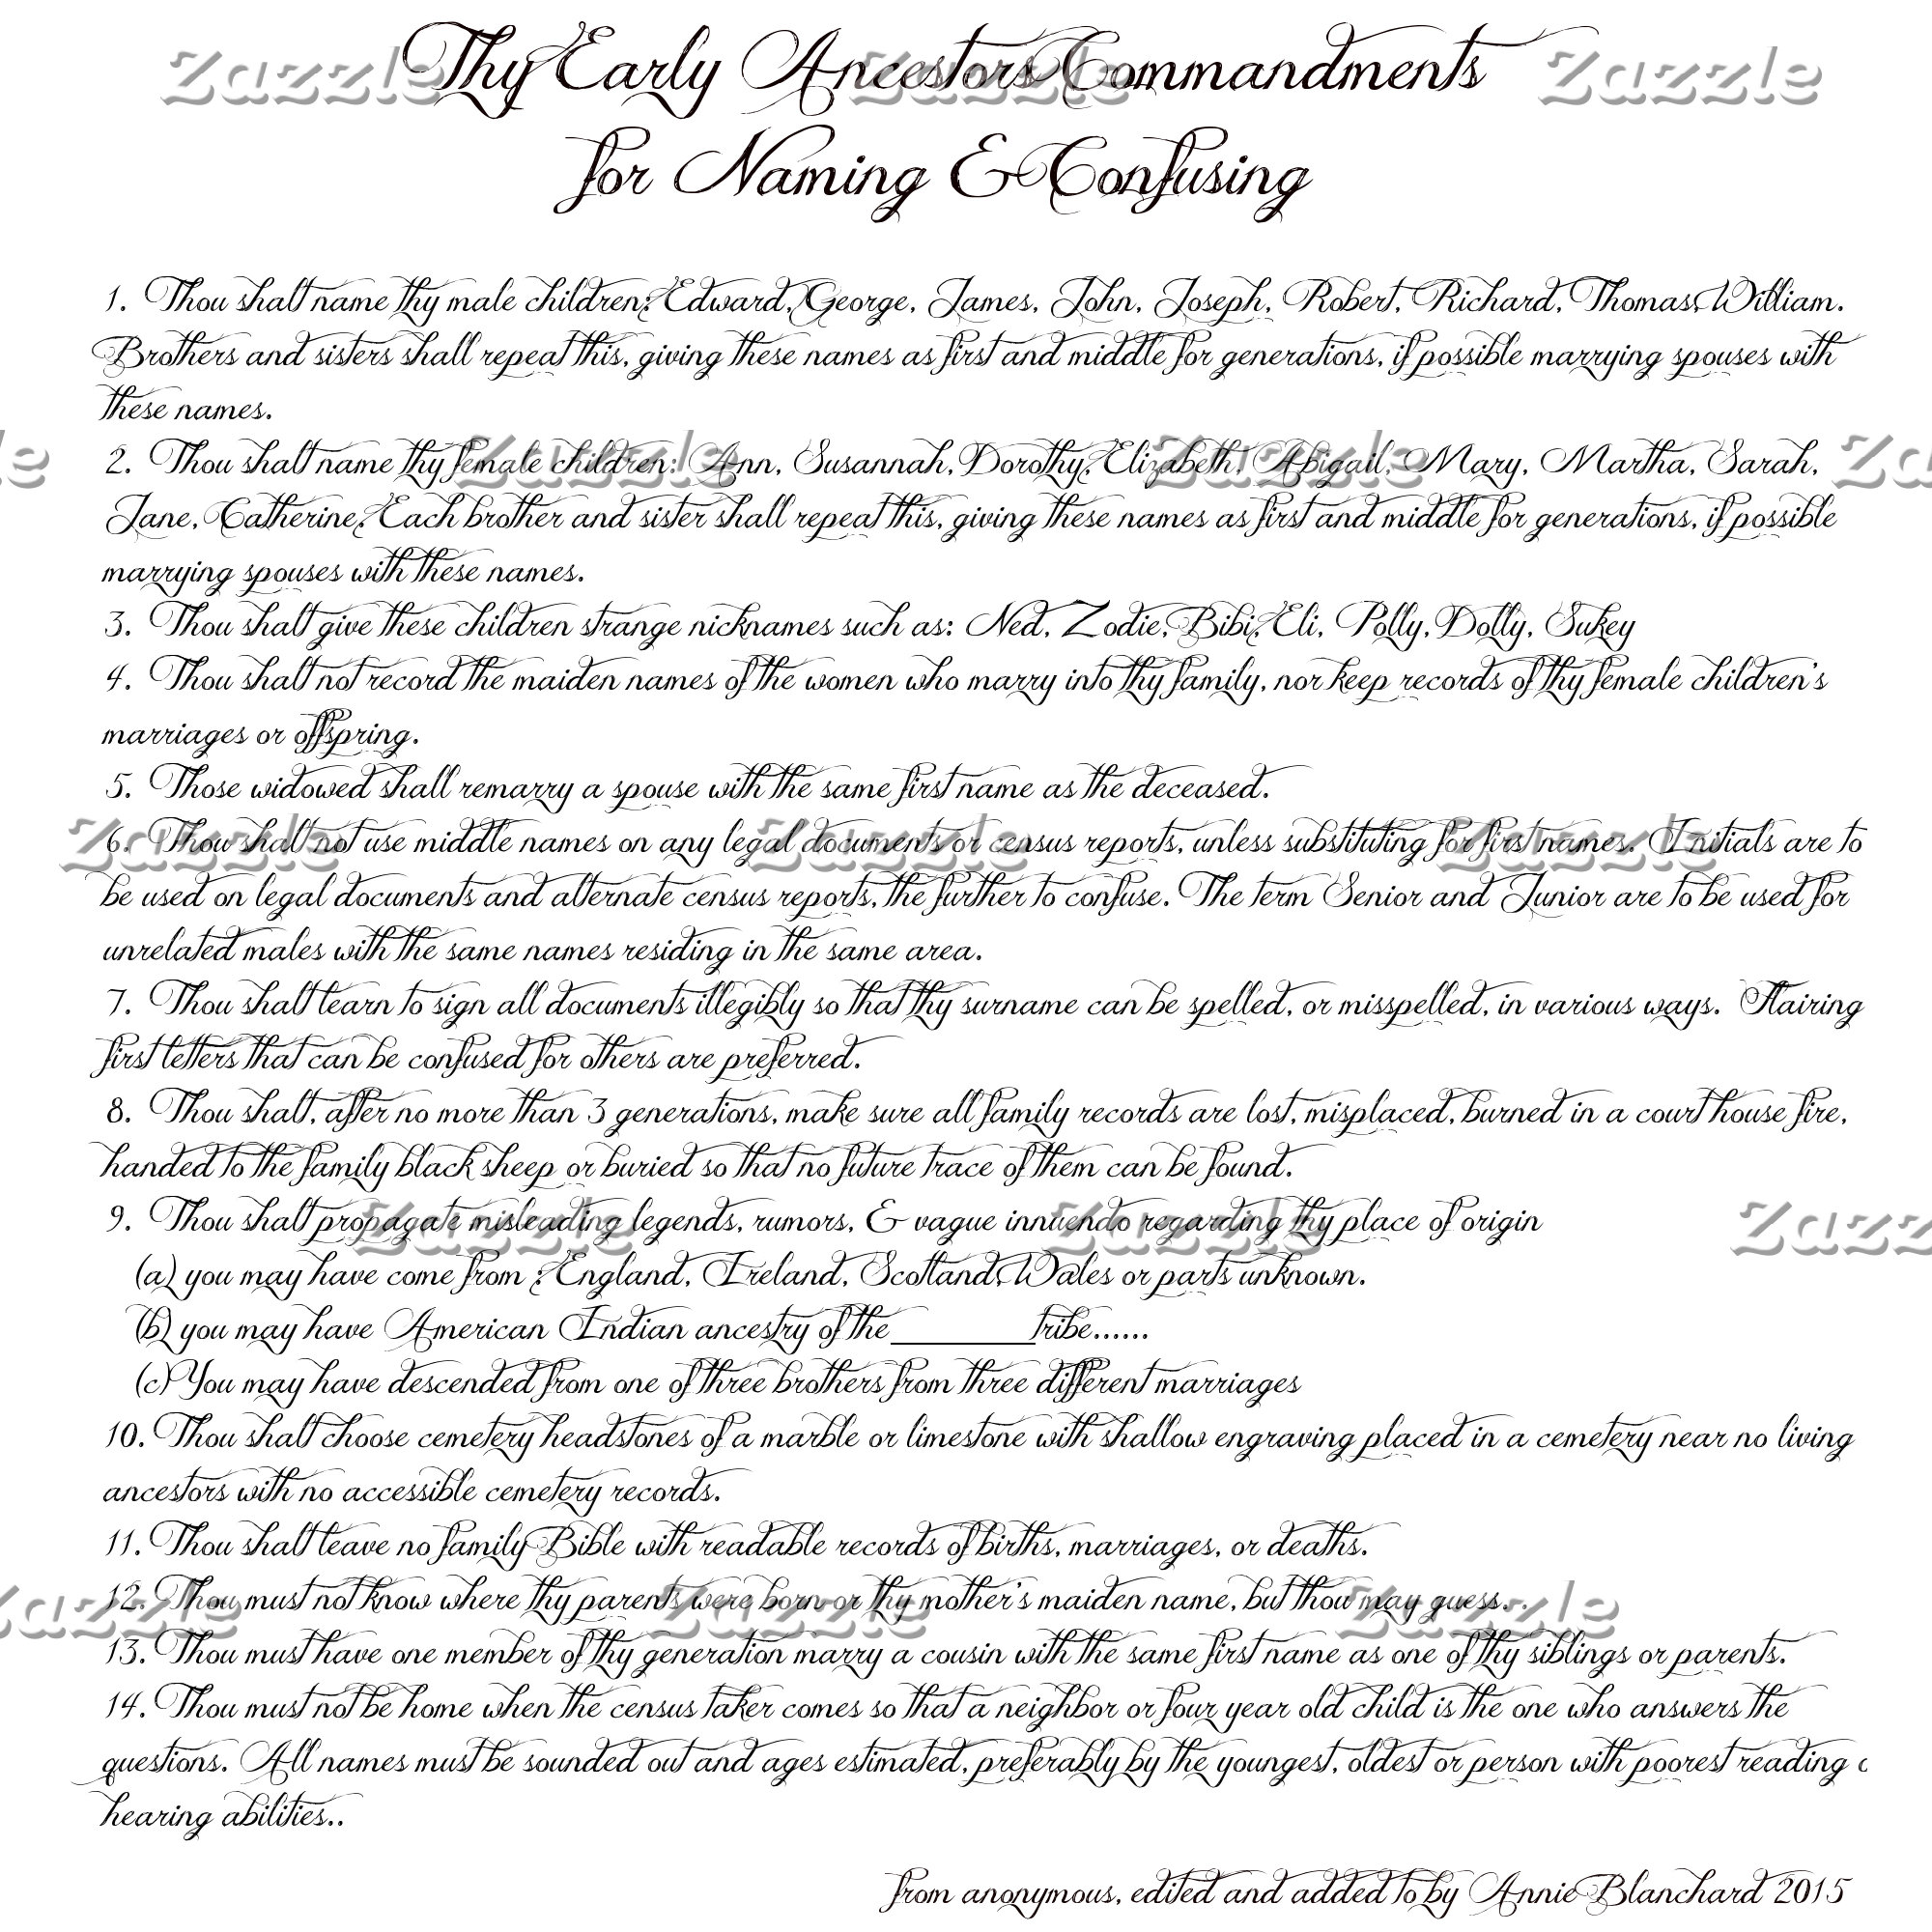 Humor - Early Ancestor Commandments